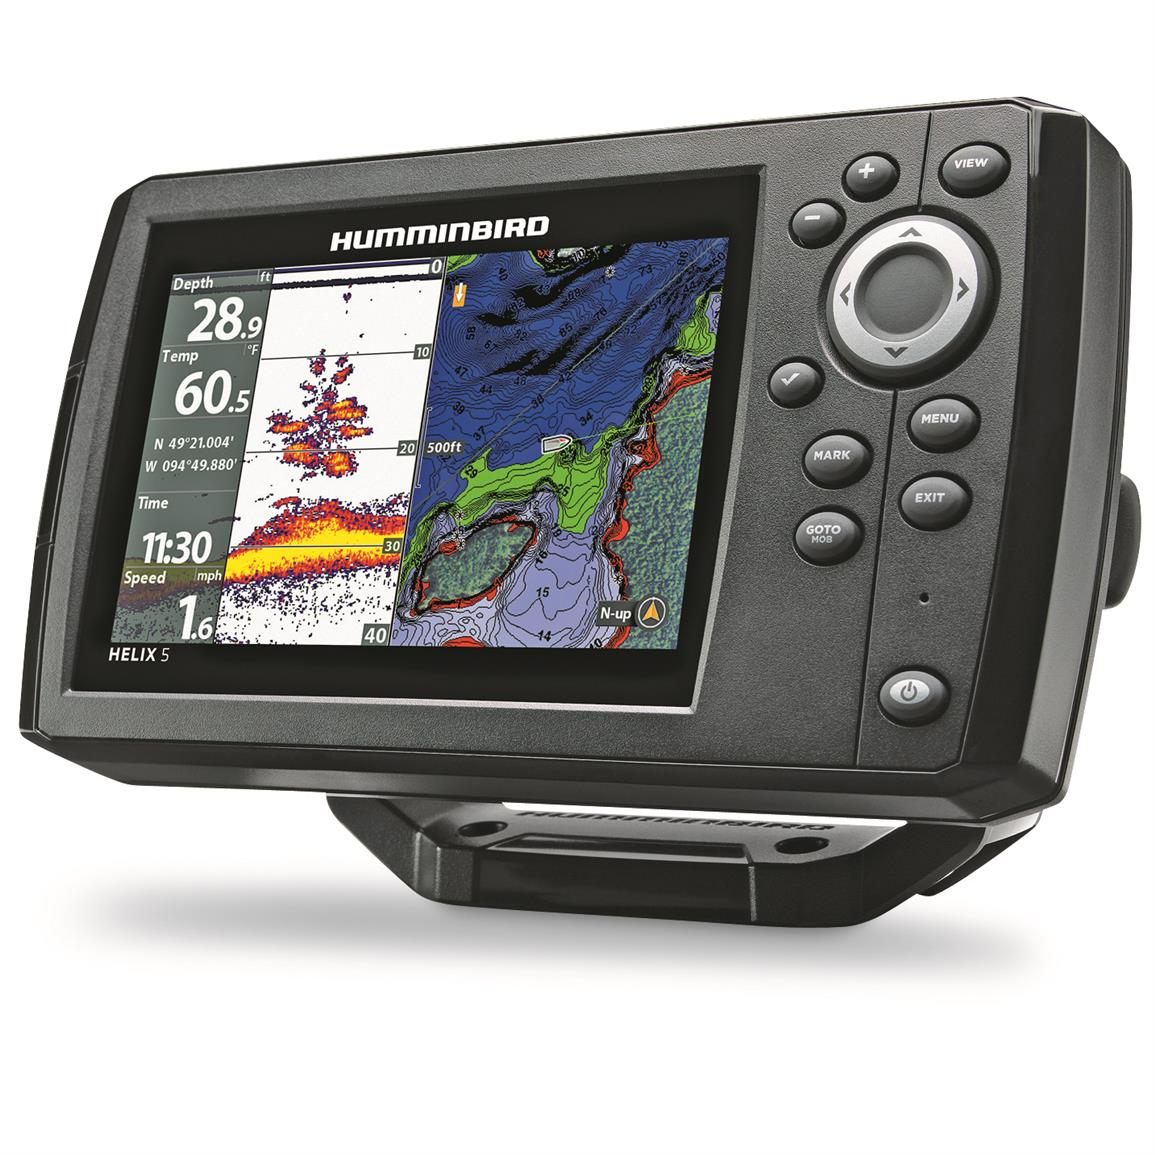 Humminbird helix 5 chirp gps g2 sonar fish finder 678891 for Fish finders on sale